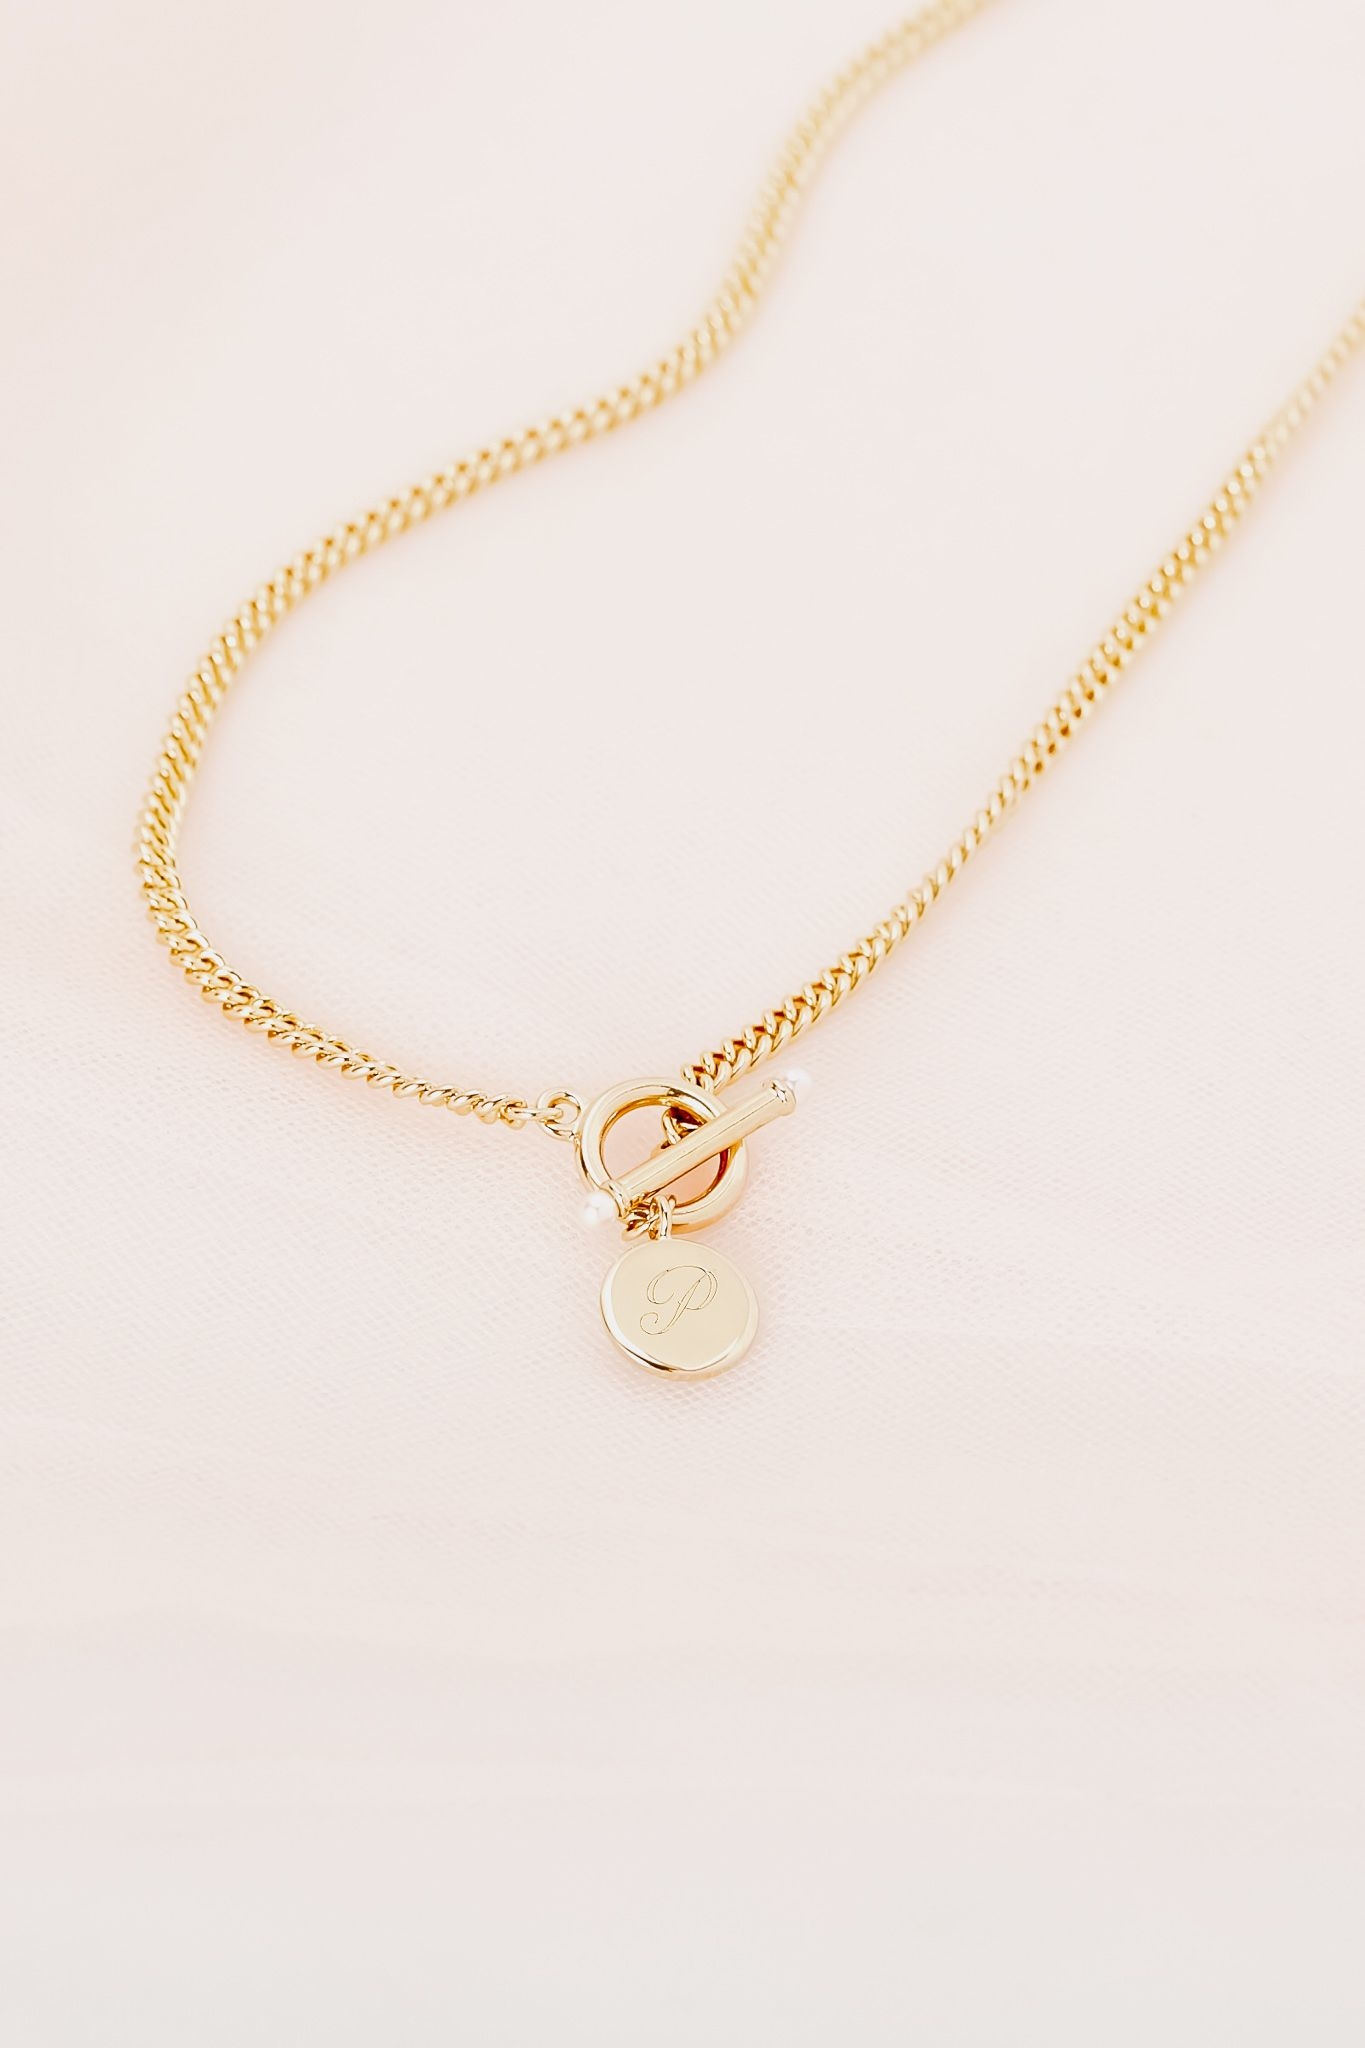 Pin By Brook York On Faves In 2021 Toggle Necklace Jewelry Trends 2020 Initial Necklace Gold